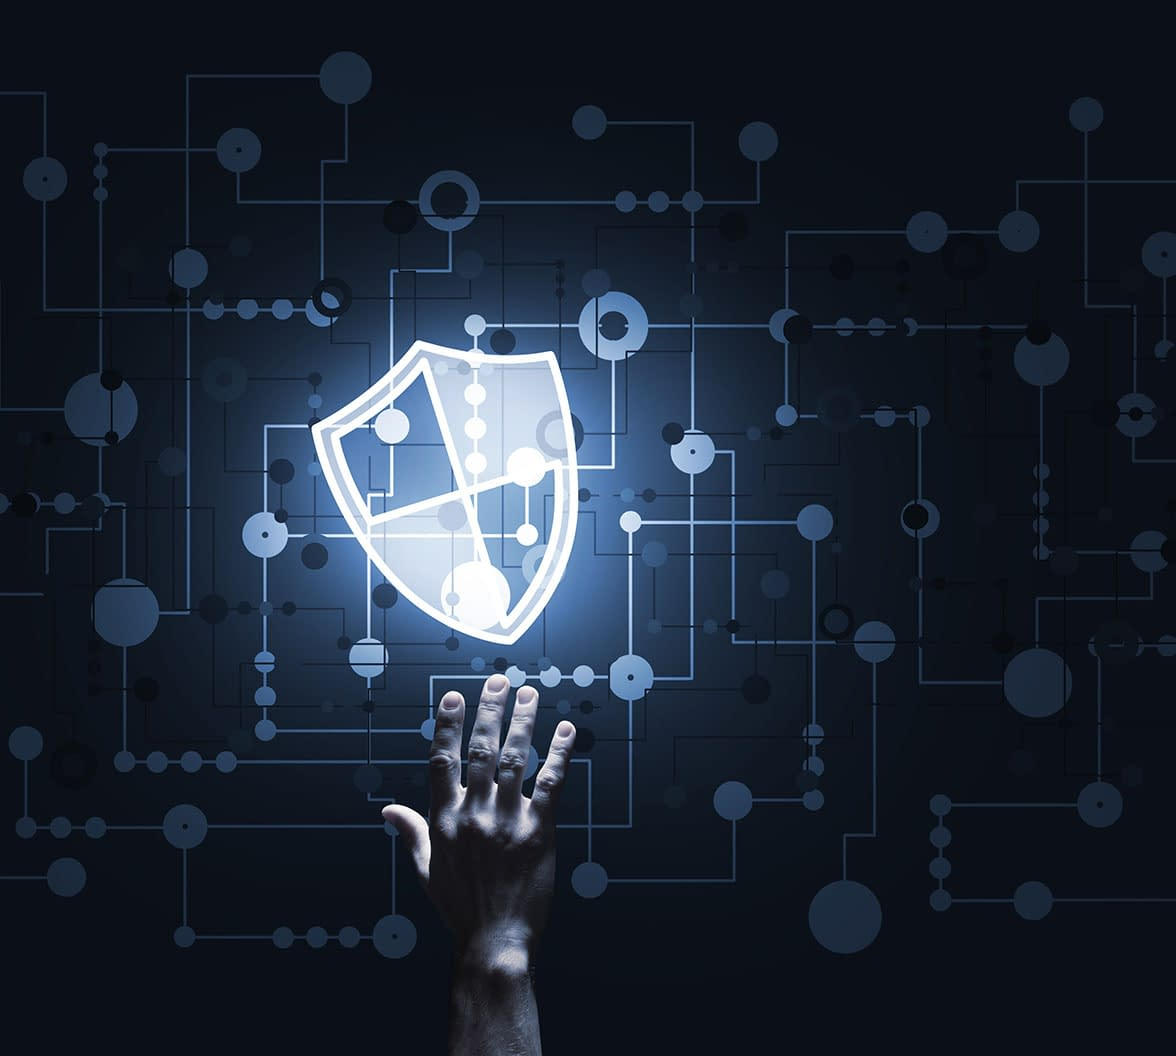 cyber security threats, cybersecurity threats, threats in cyber security, types of cyber security threats